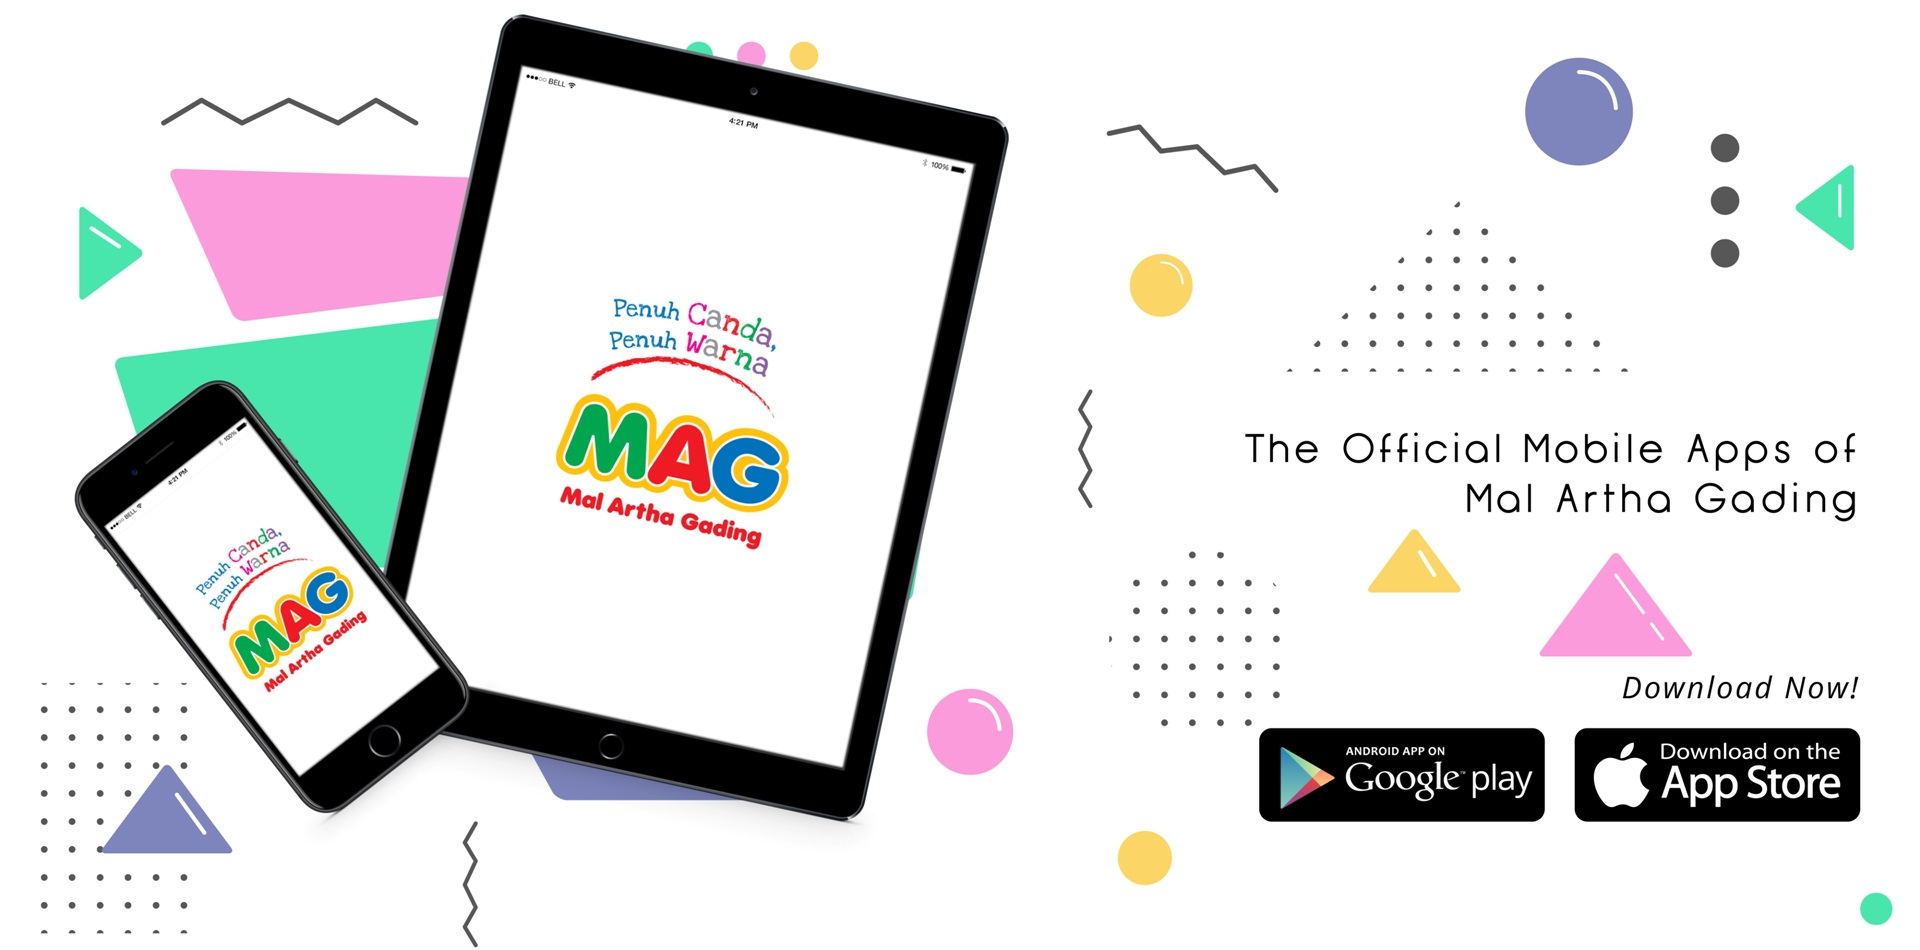 MAG Official Mobile Apps